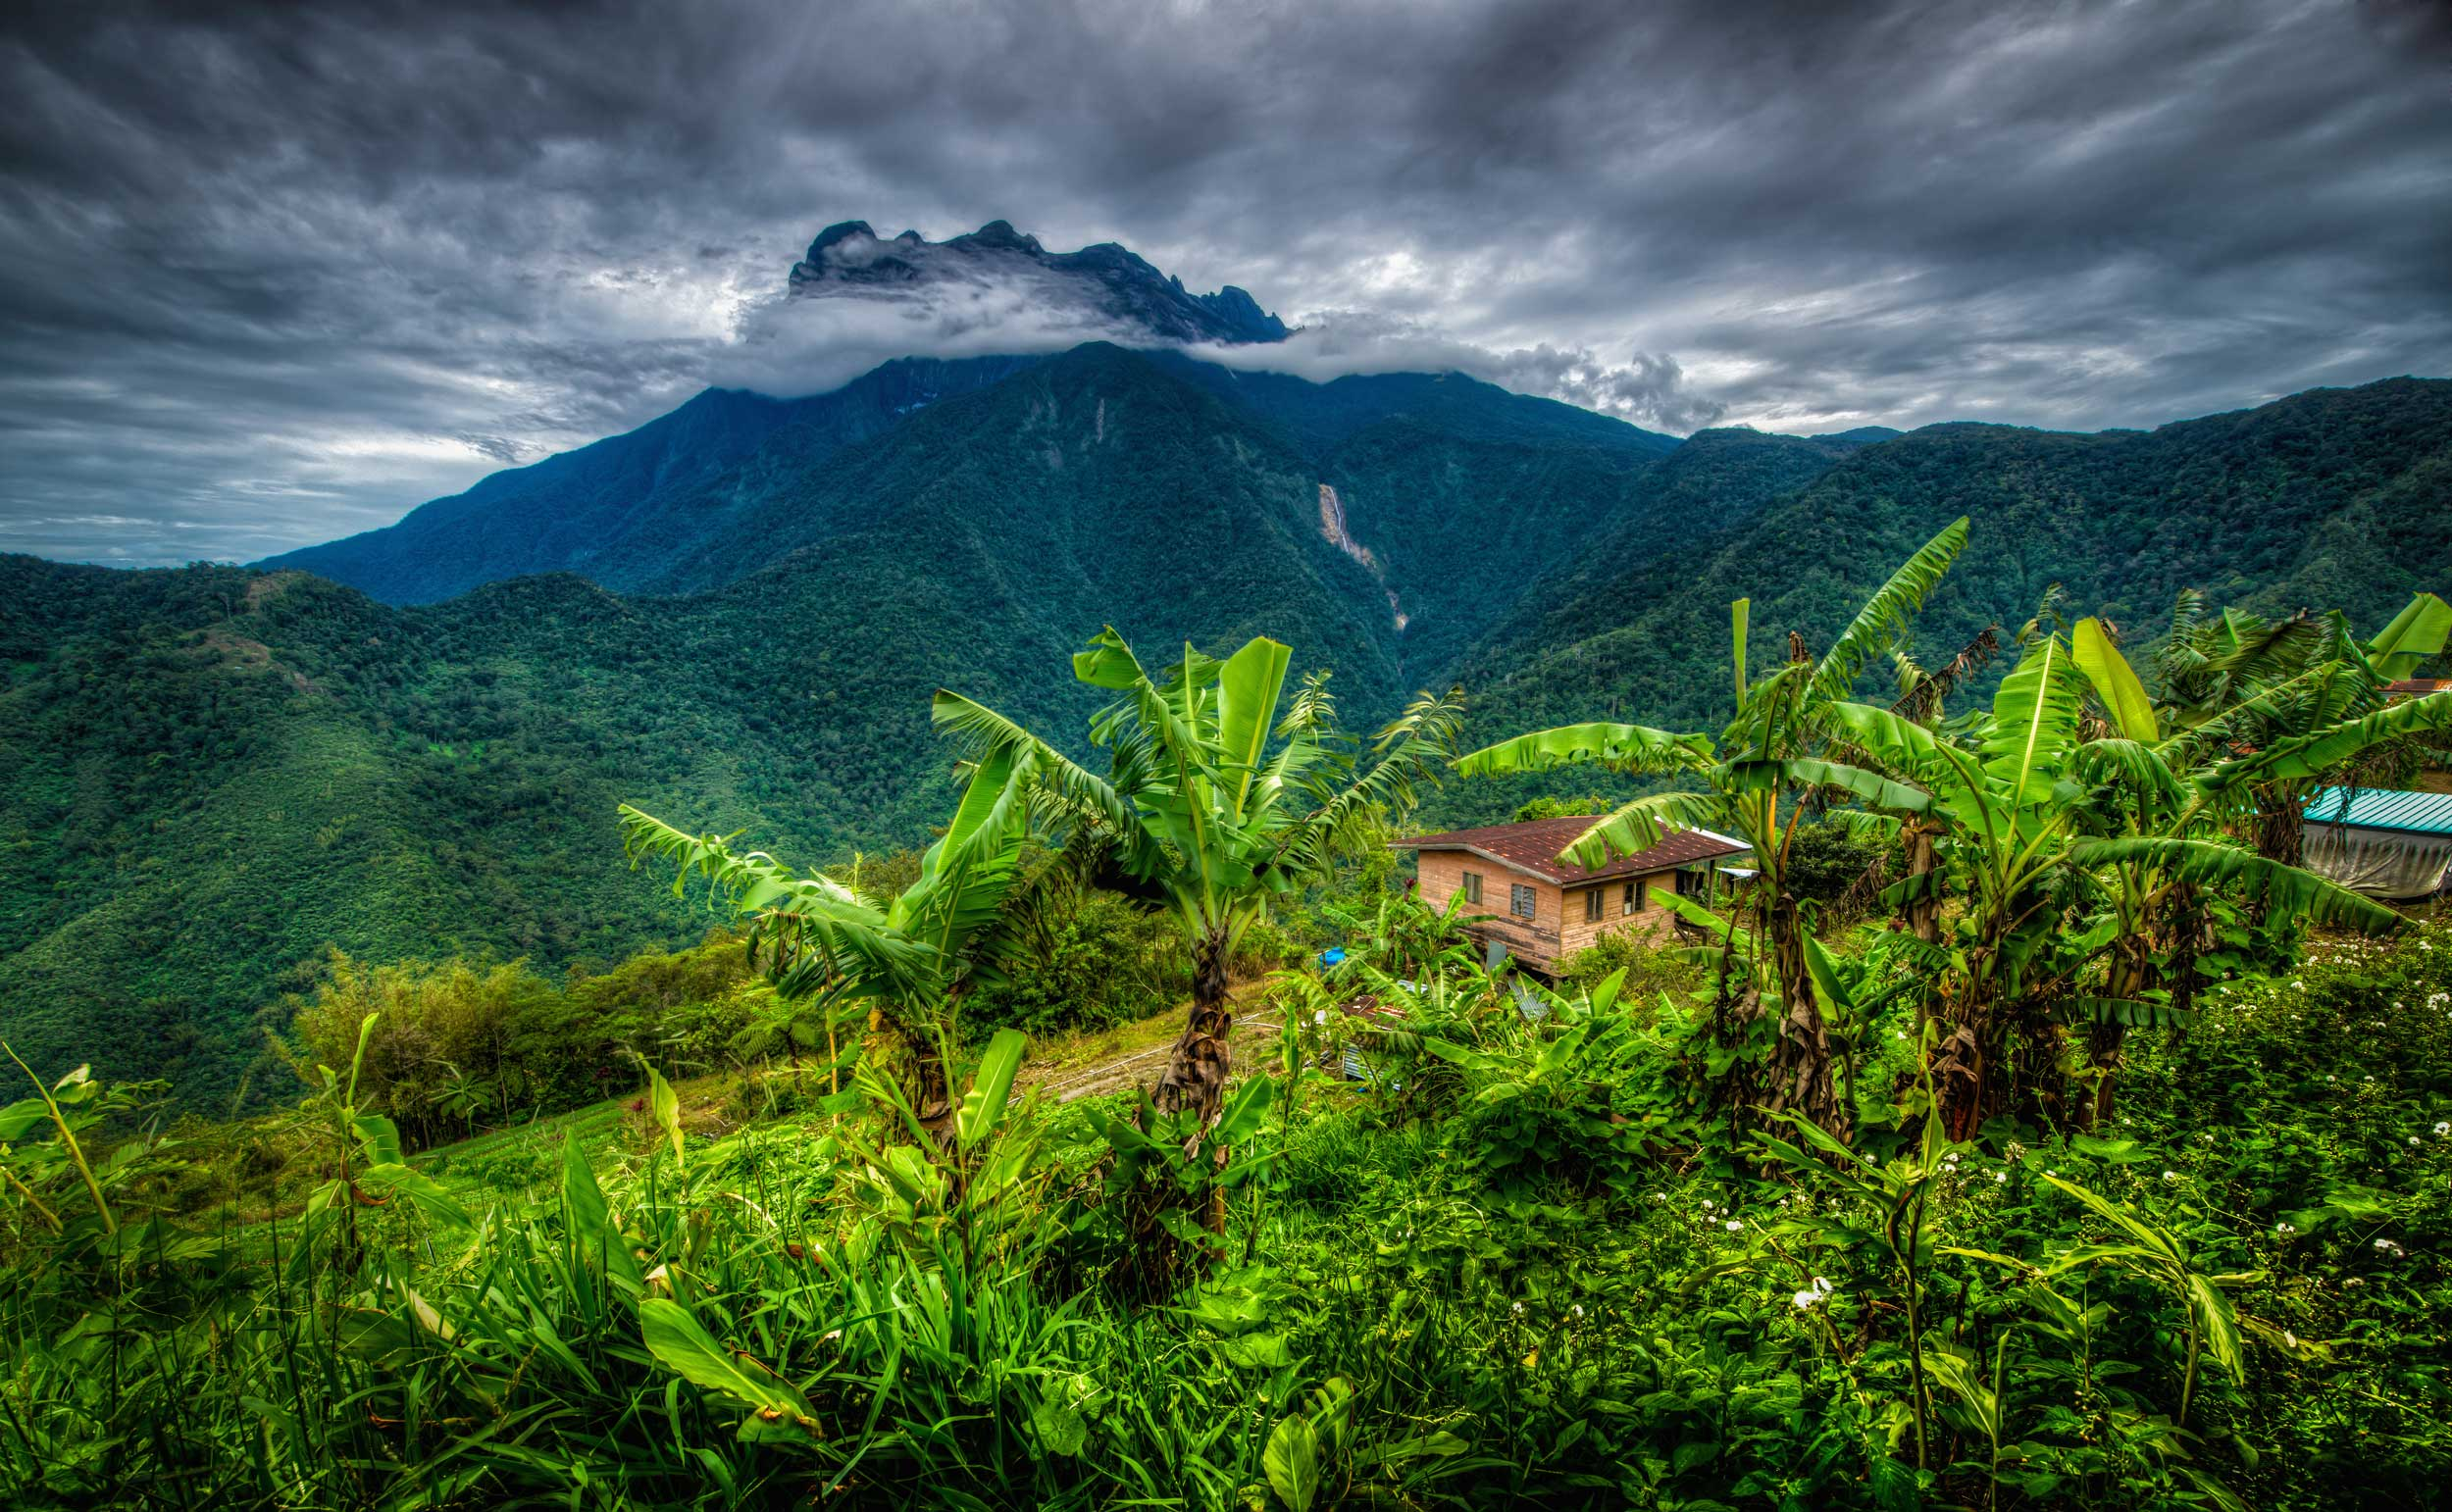 View down a mountainside with banana palms and a house with a brooding, looming Mt Kinabalu in the distant, cloudy sky, Sabah